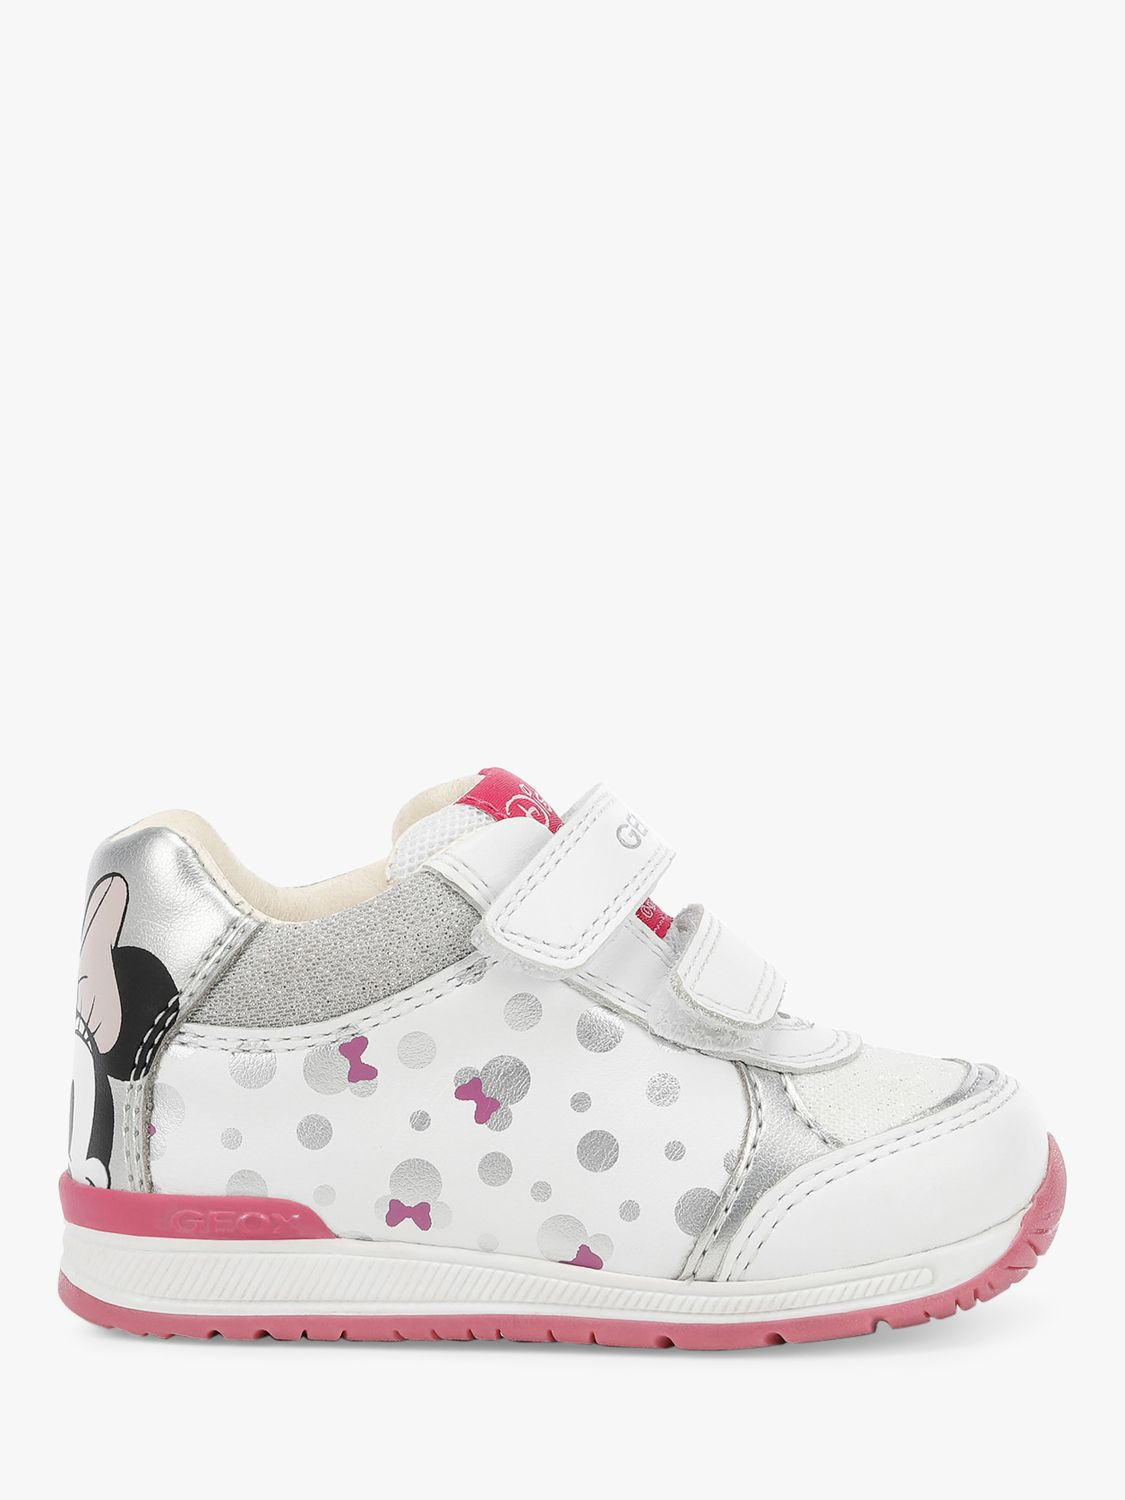 Geox Geox Junior Rishon Riptape Trainers, White